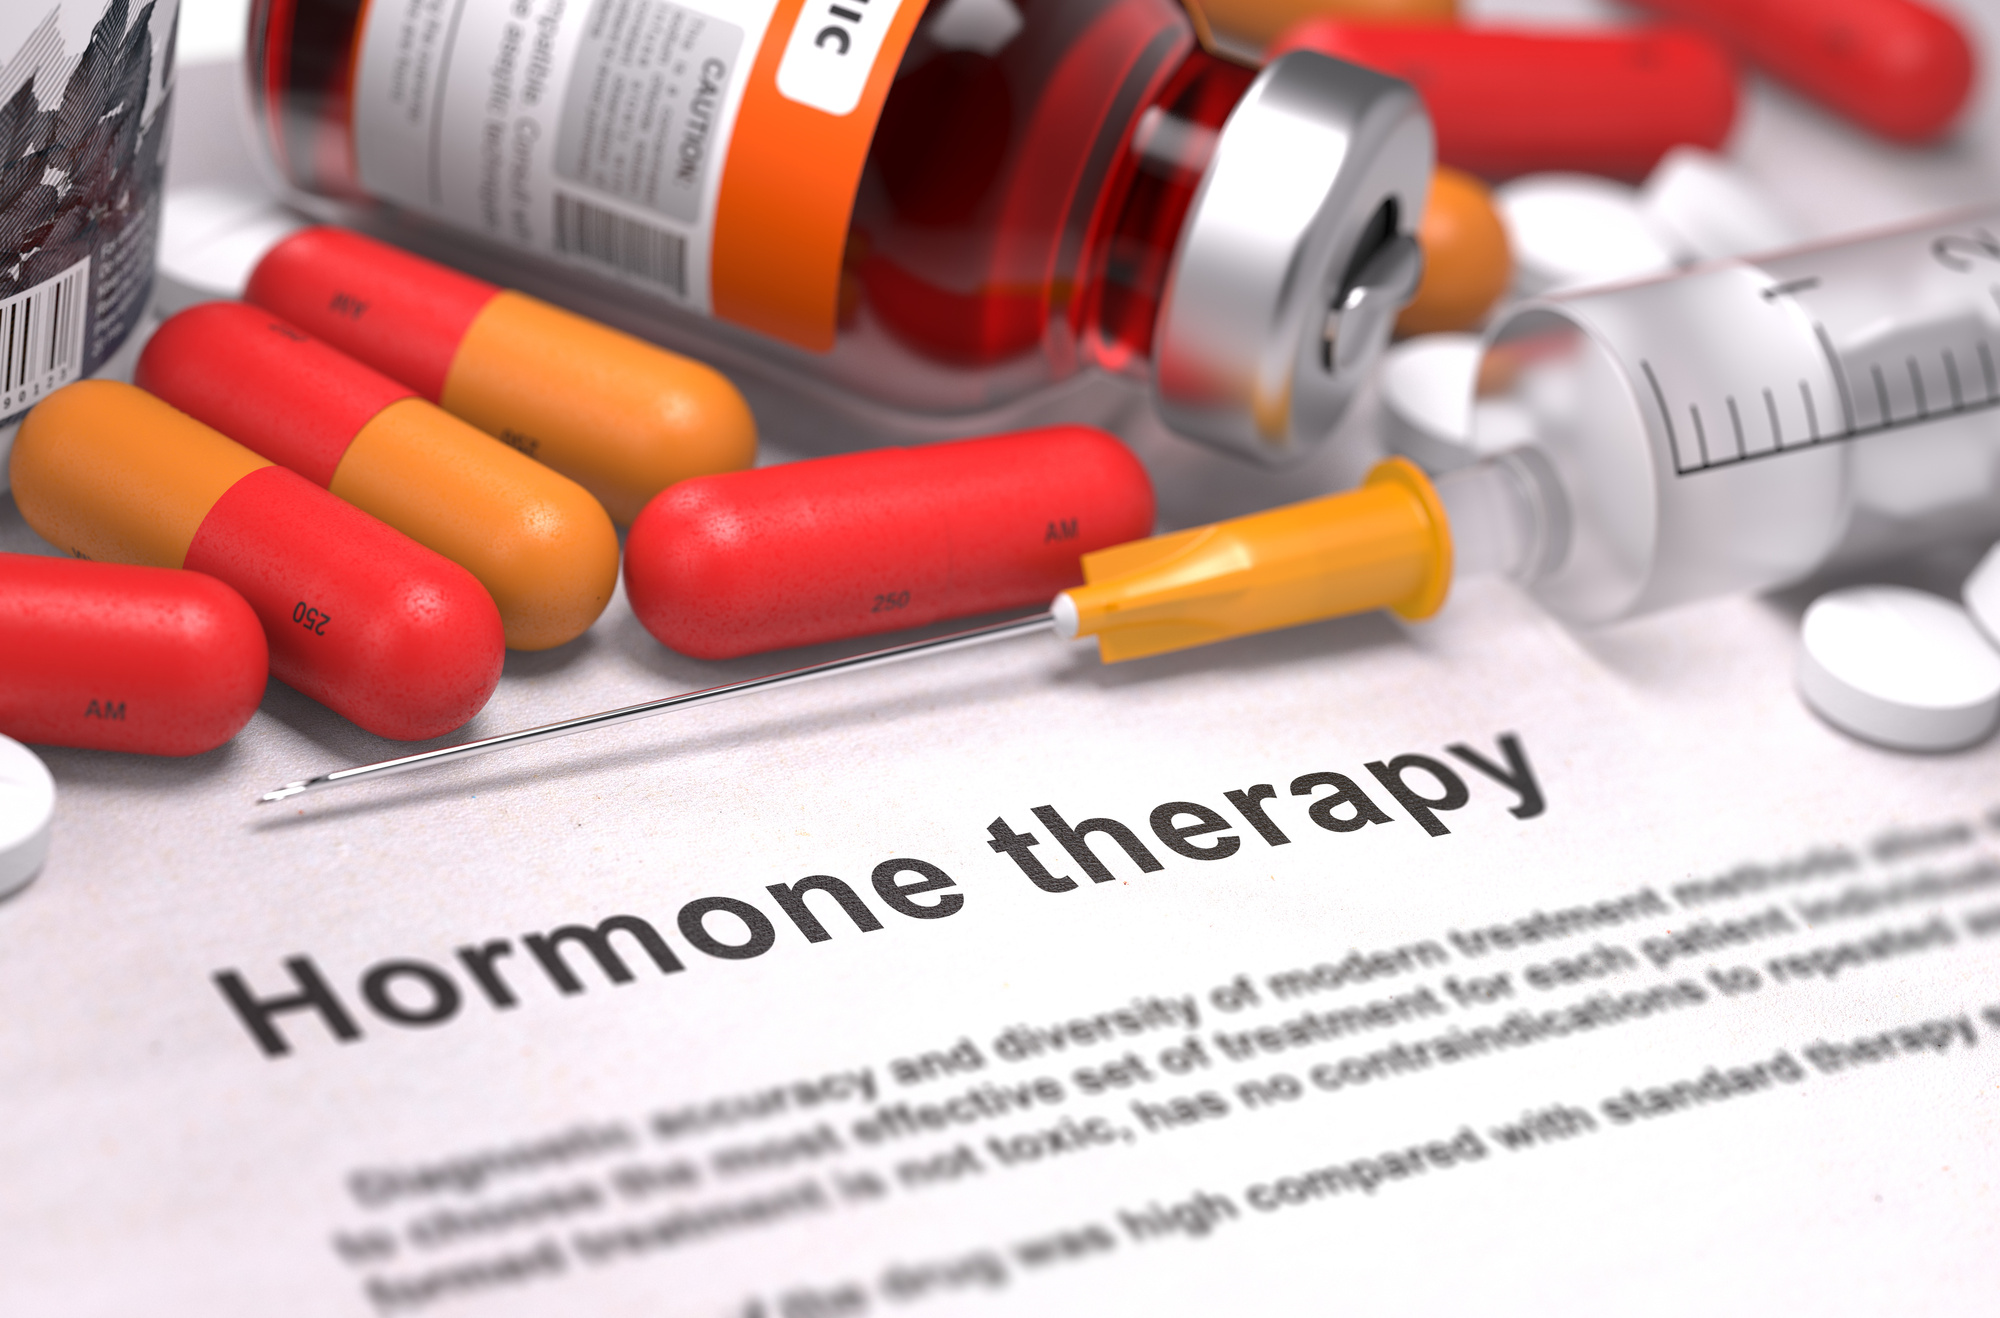 Hormone Replacement Therapy - Should Parents Be Allowed to Offer to Children?